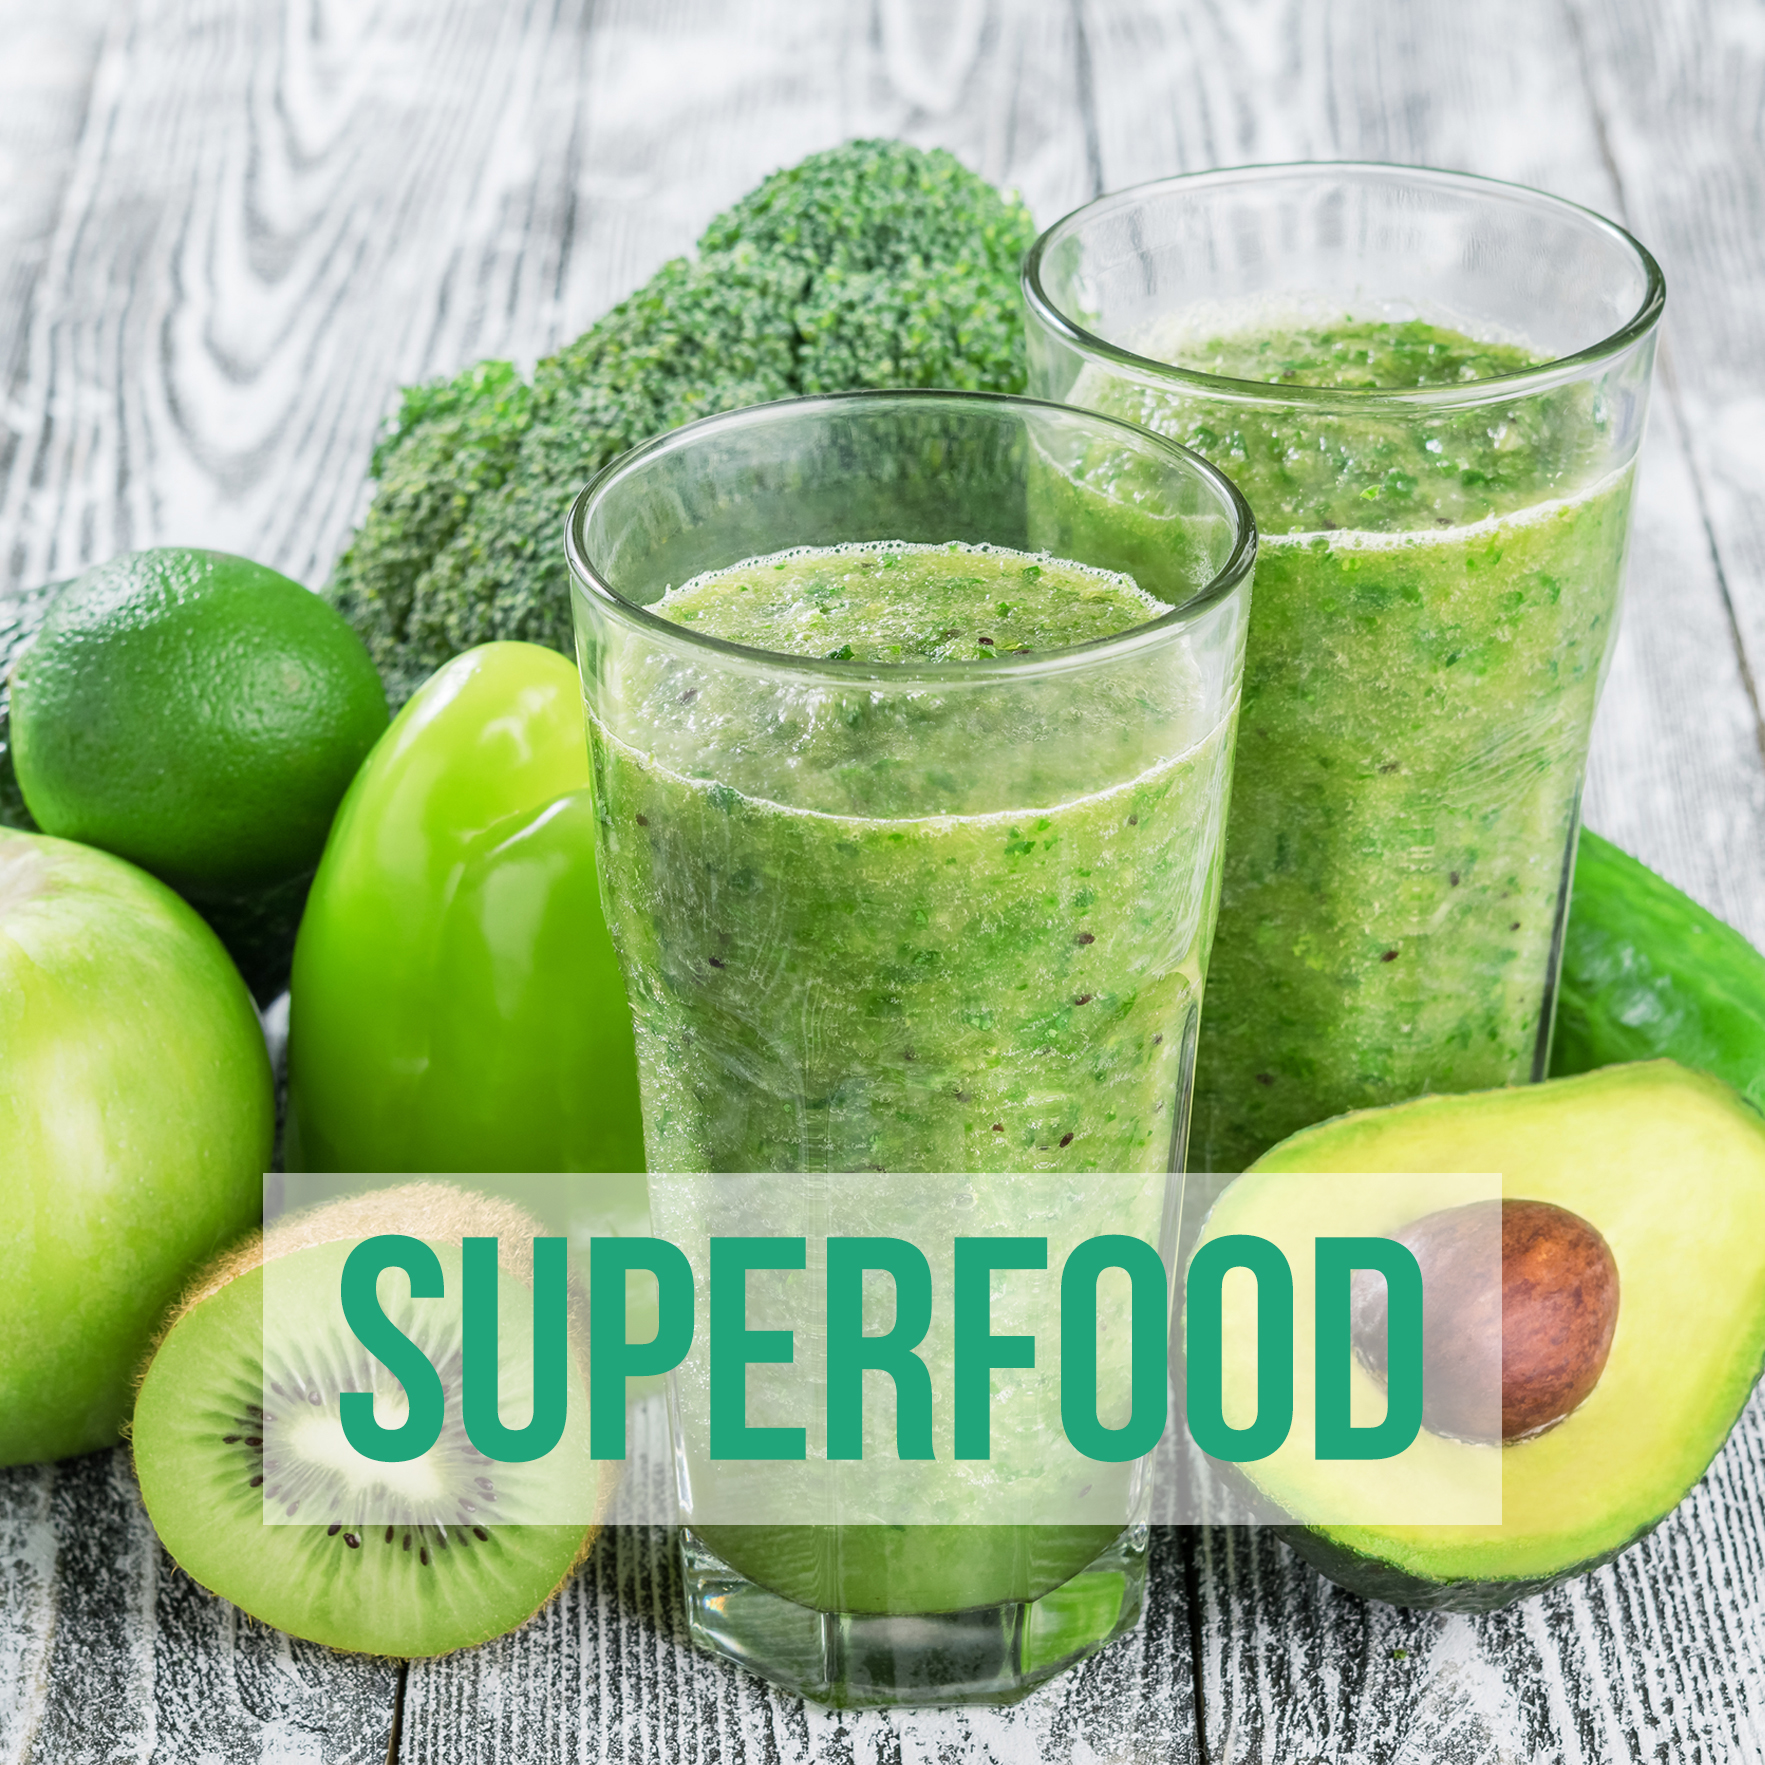 Superfood - Chlorella